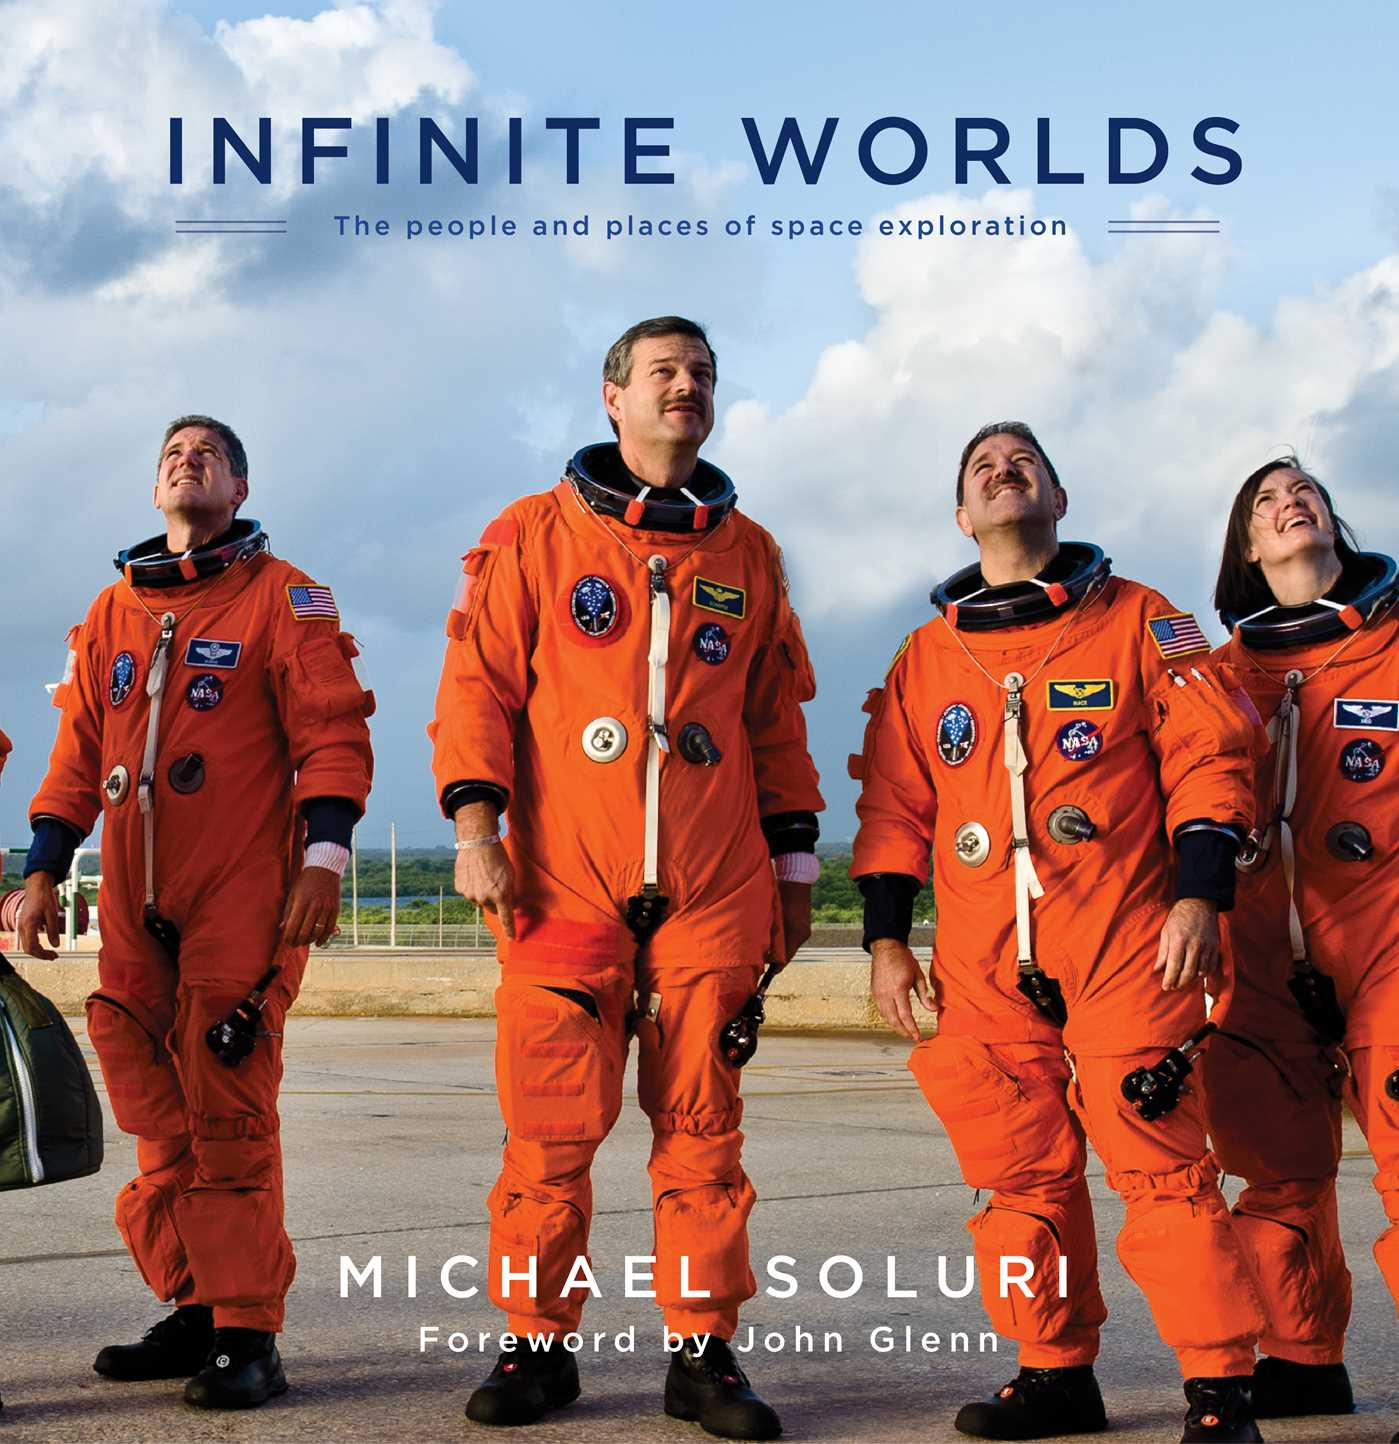 Infinite-worlds-9781476738321_hr